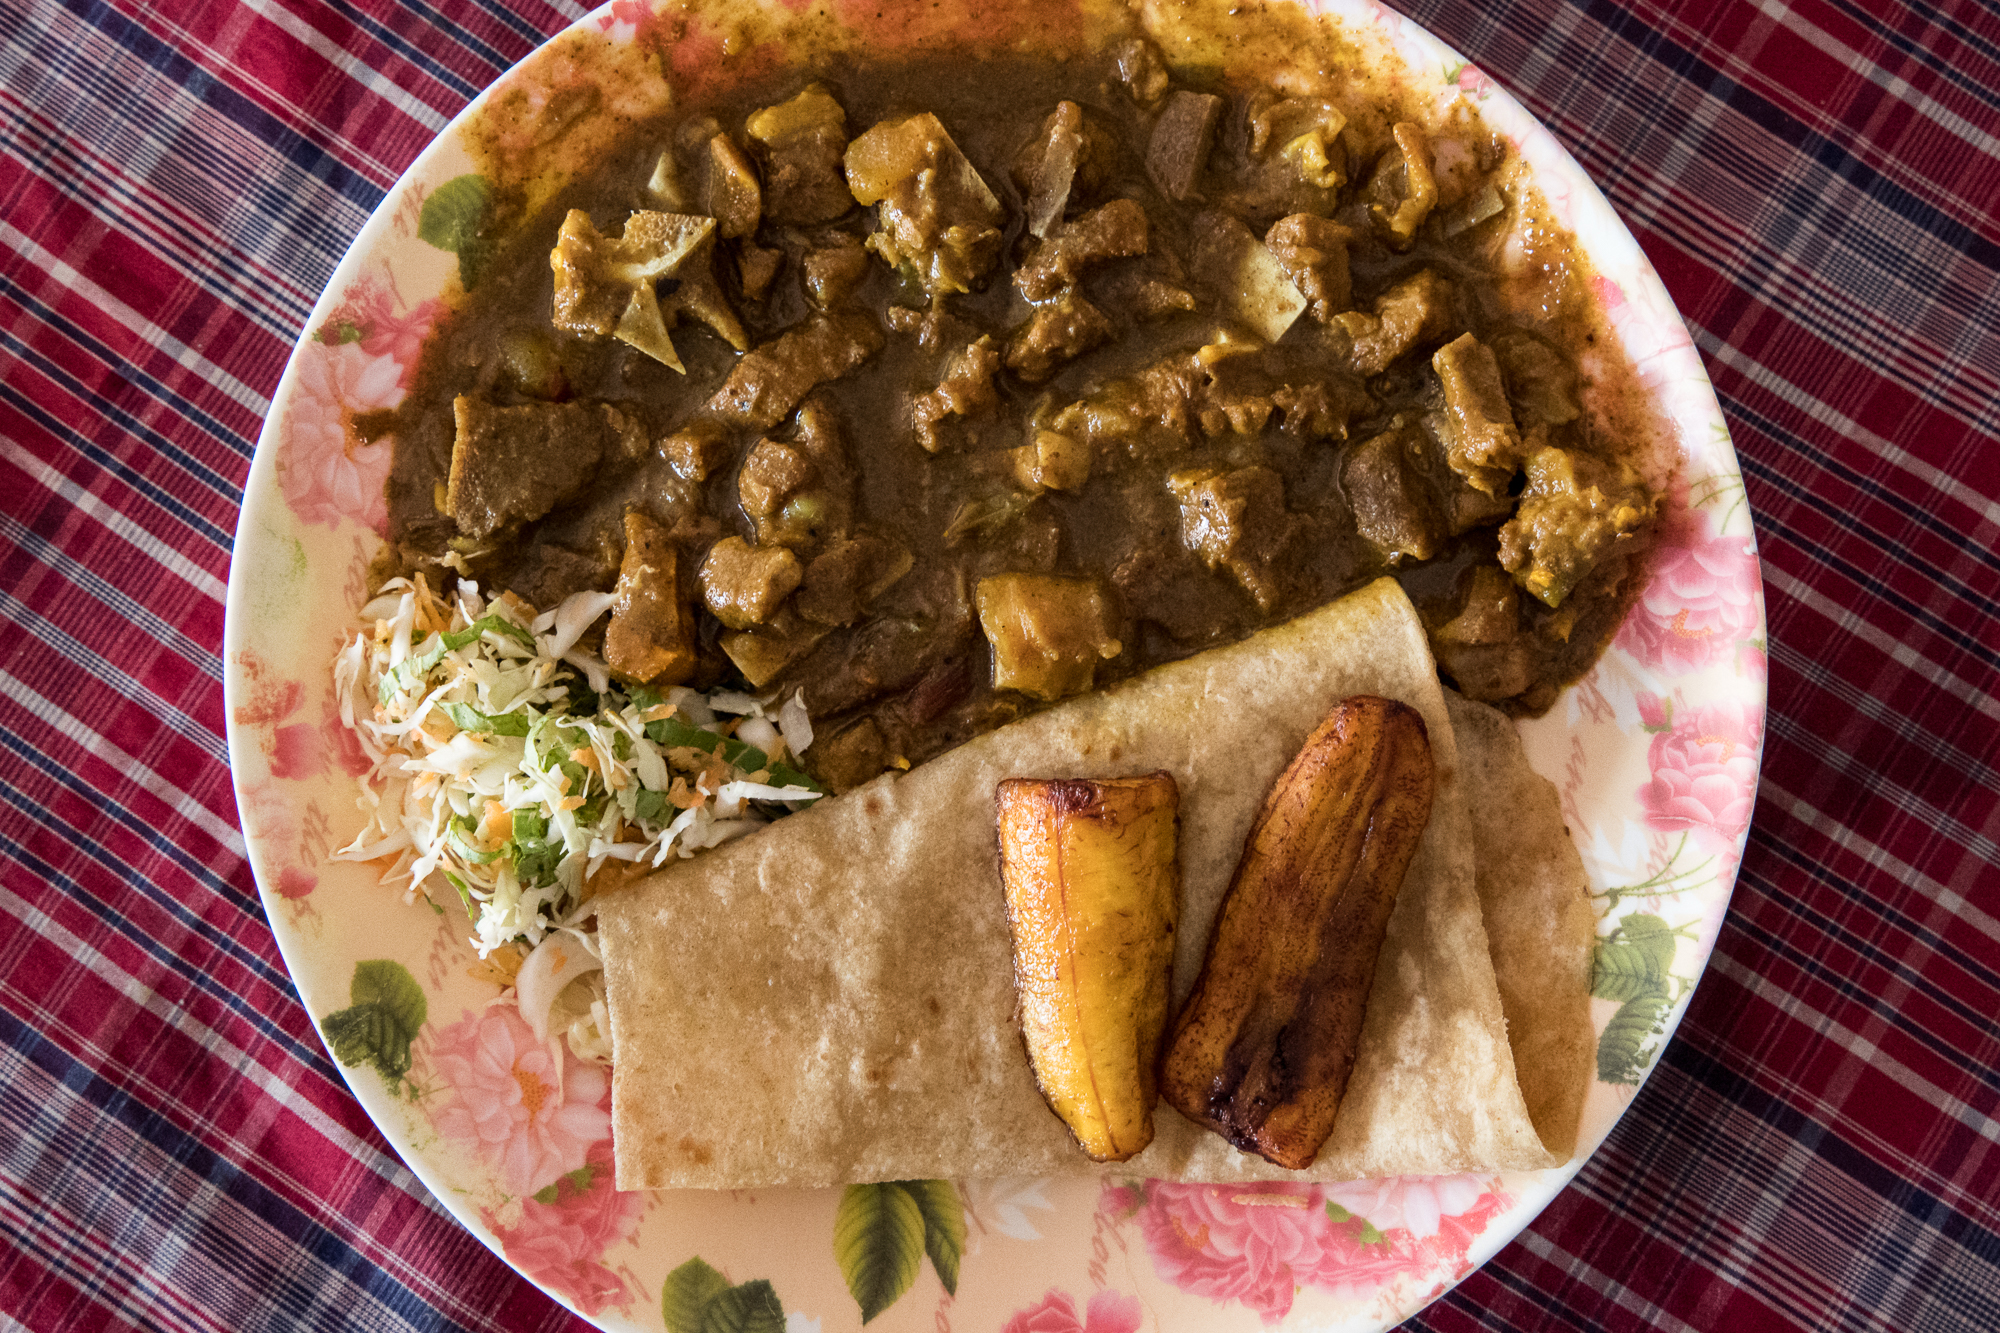 The Jamaica Food and Drink Festival Celebrates Delicious Spicy Cuisine